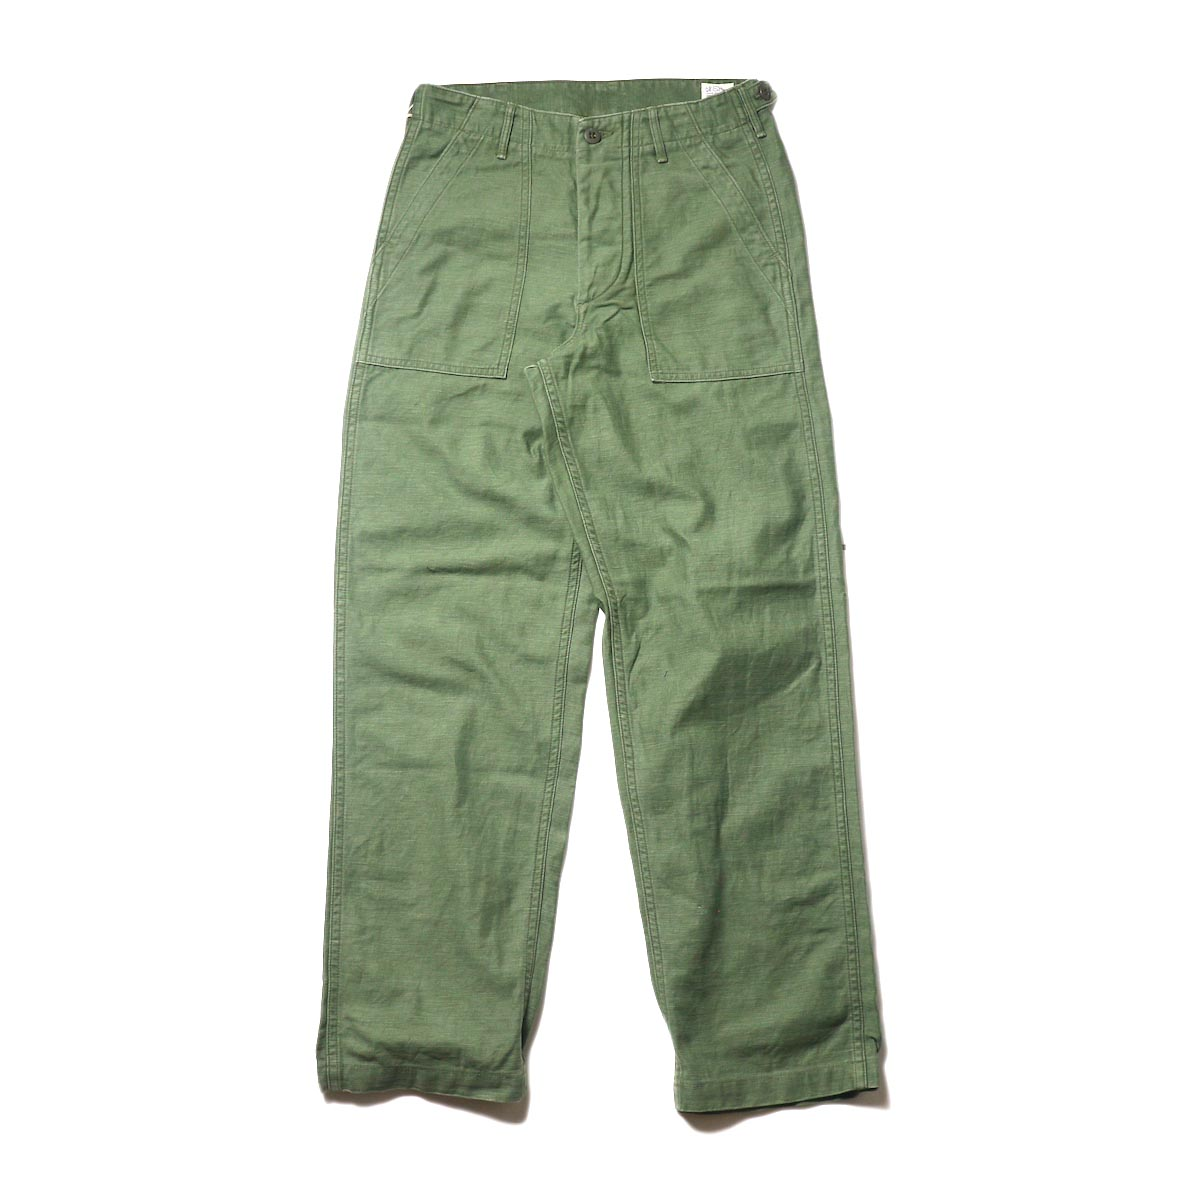 orSlow / US ARMY FATIGUE PANTS (Used Green)